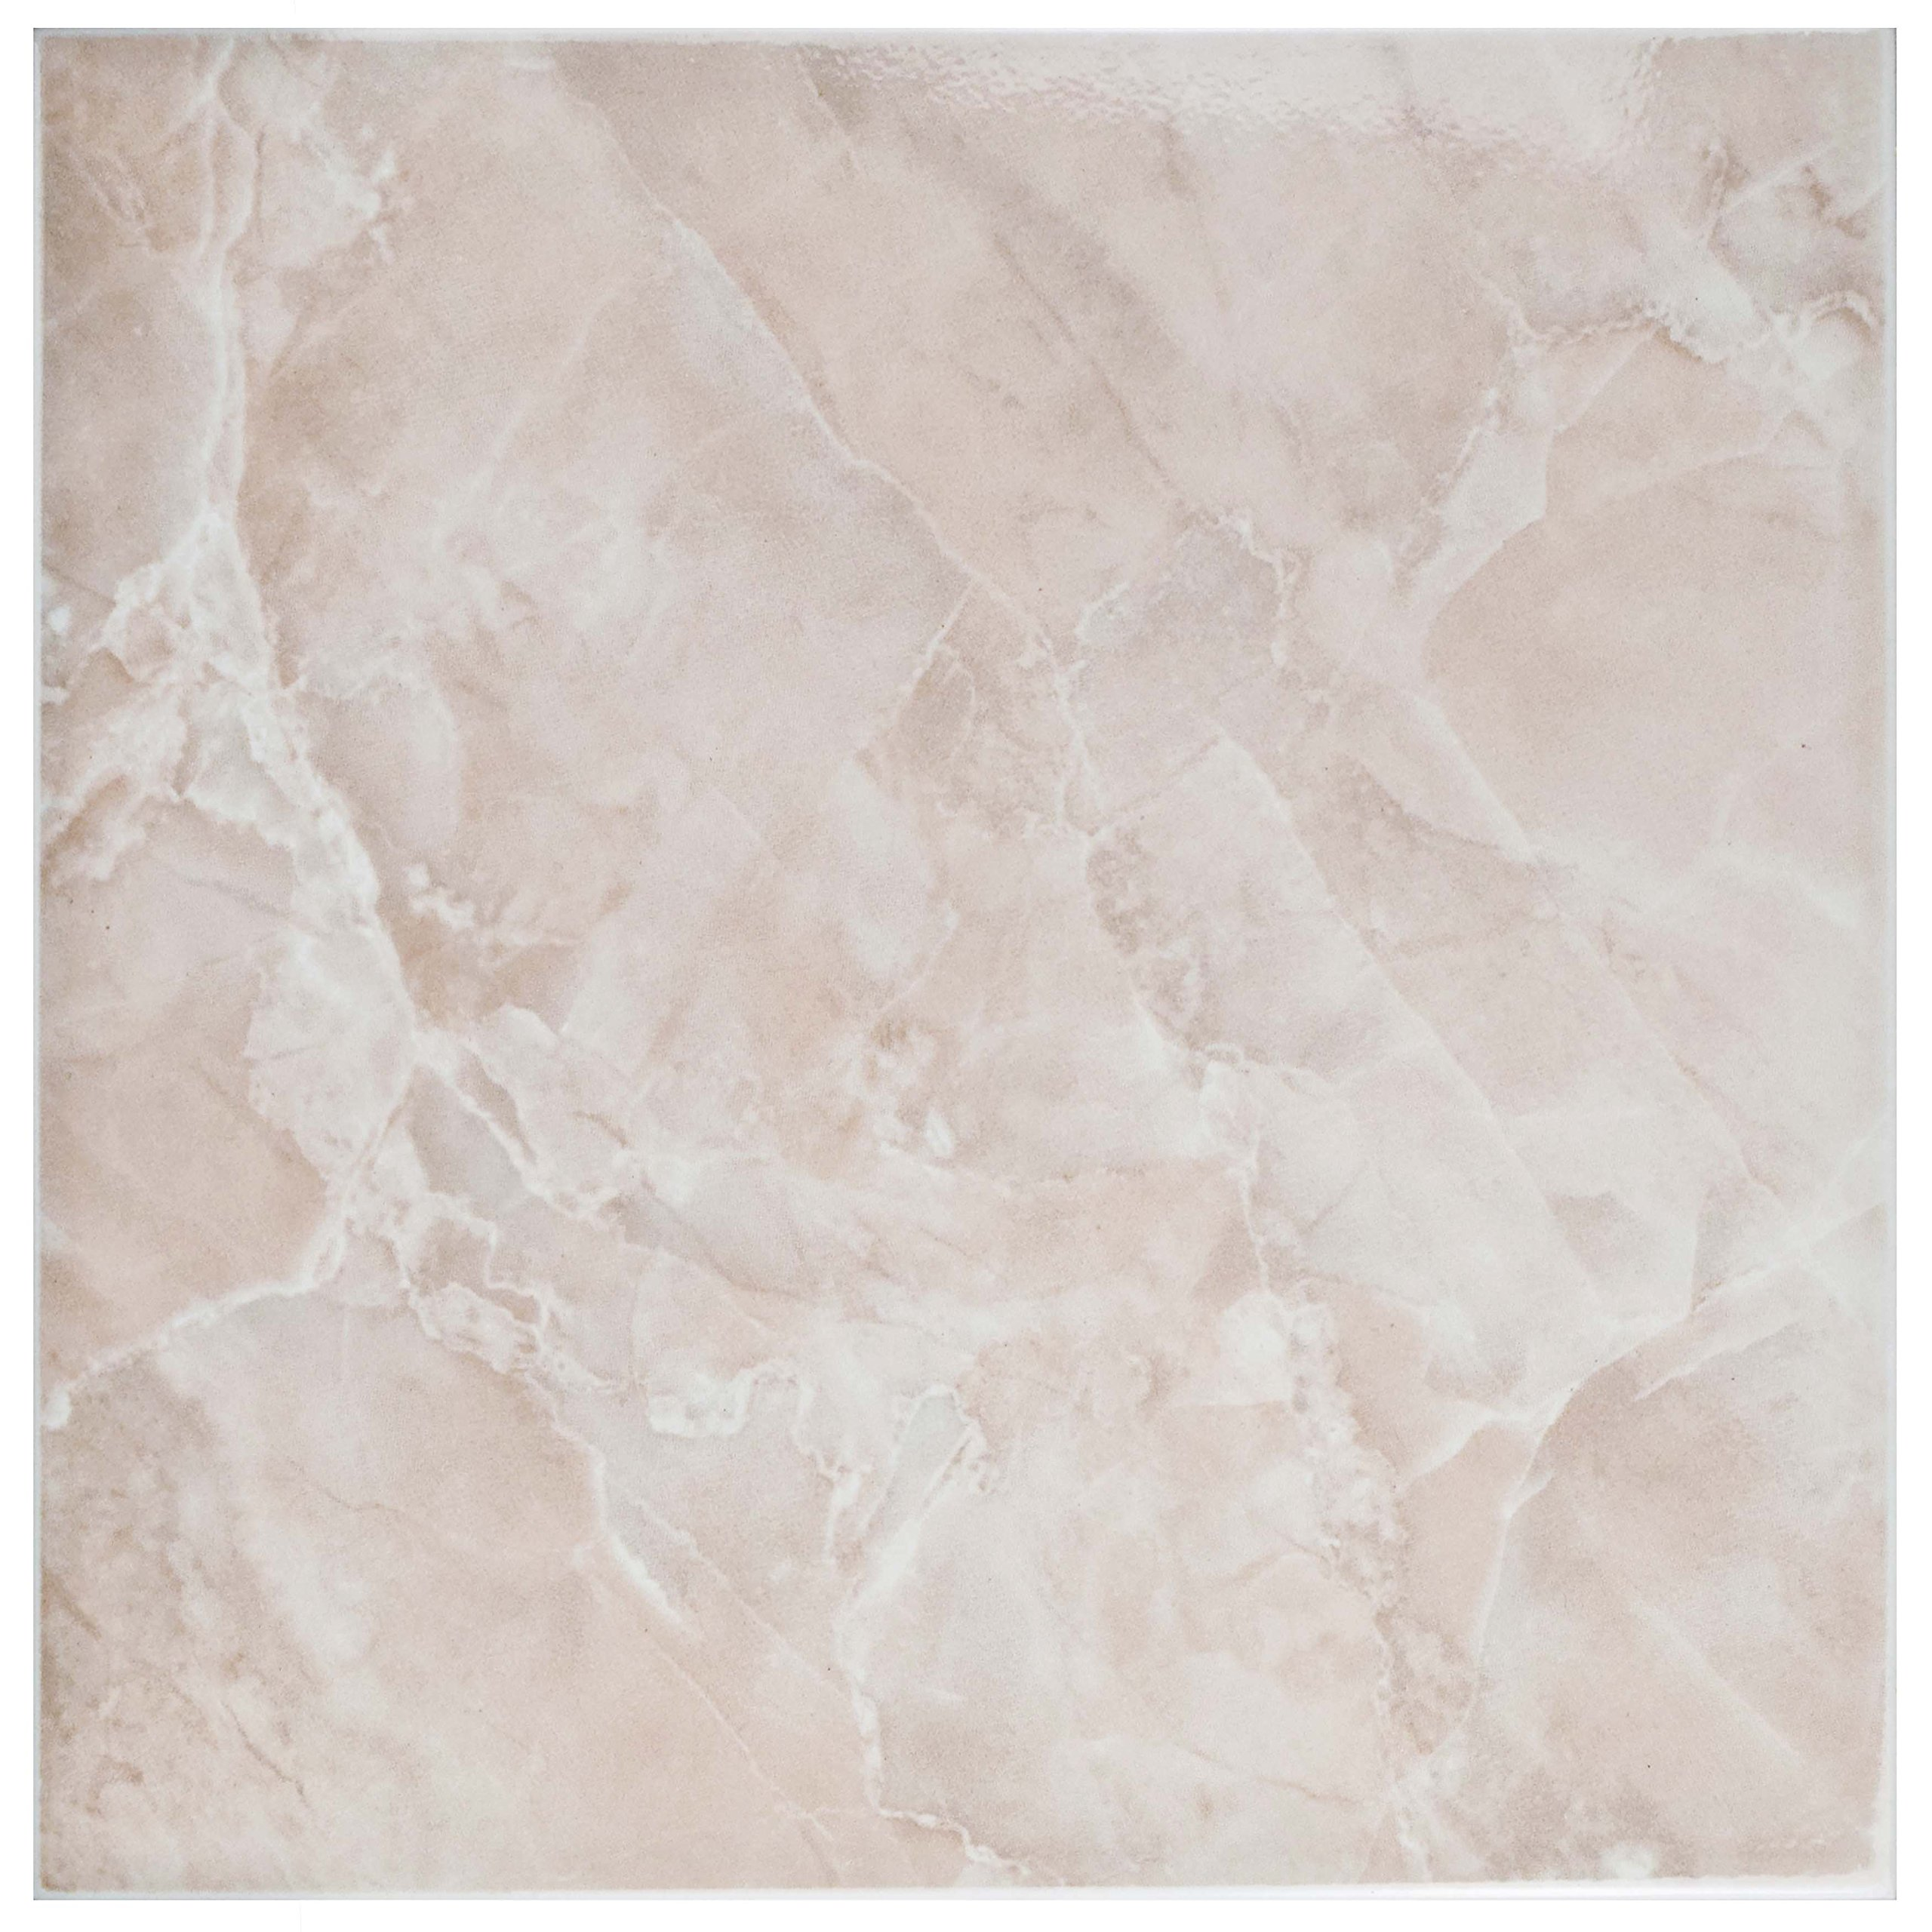 SomerTile FTC12GRS Sigma Ceramic Floor and Wall Tile, 11.75'' x 11.75'', Red/Pink